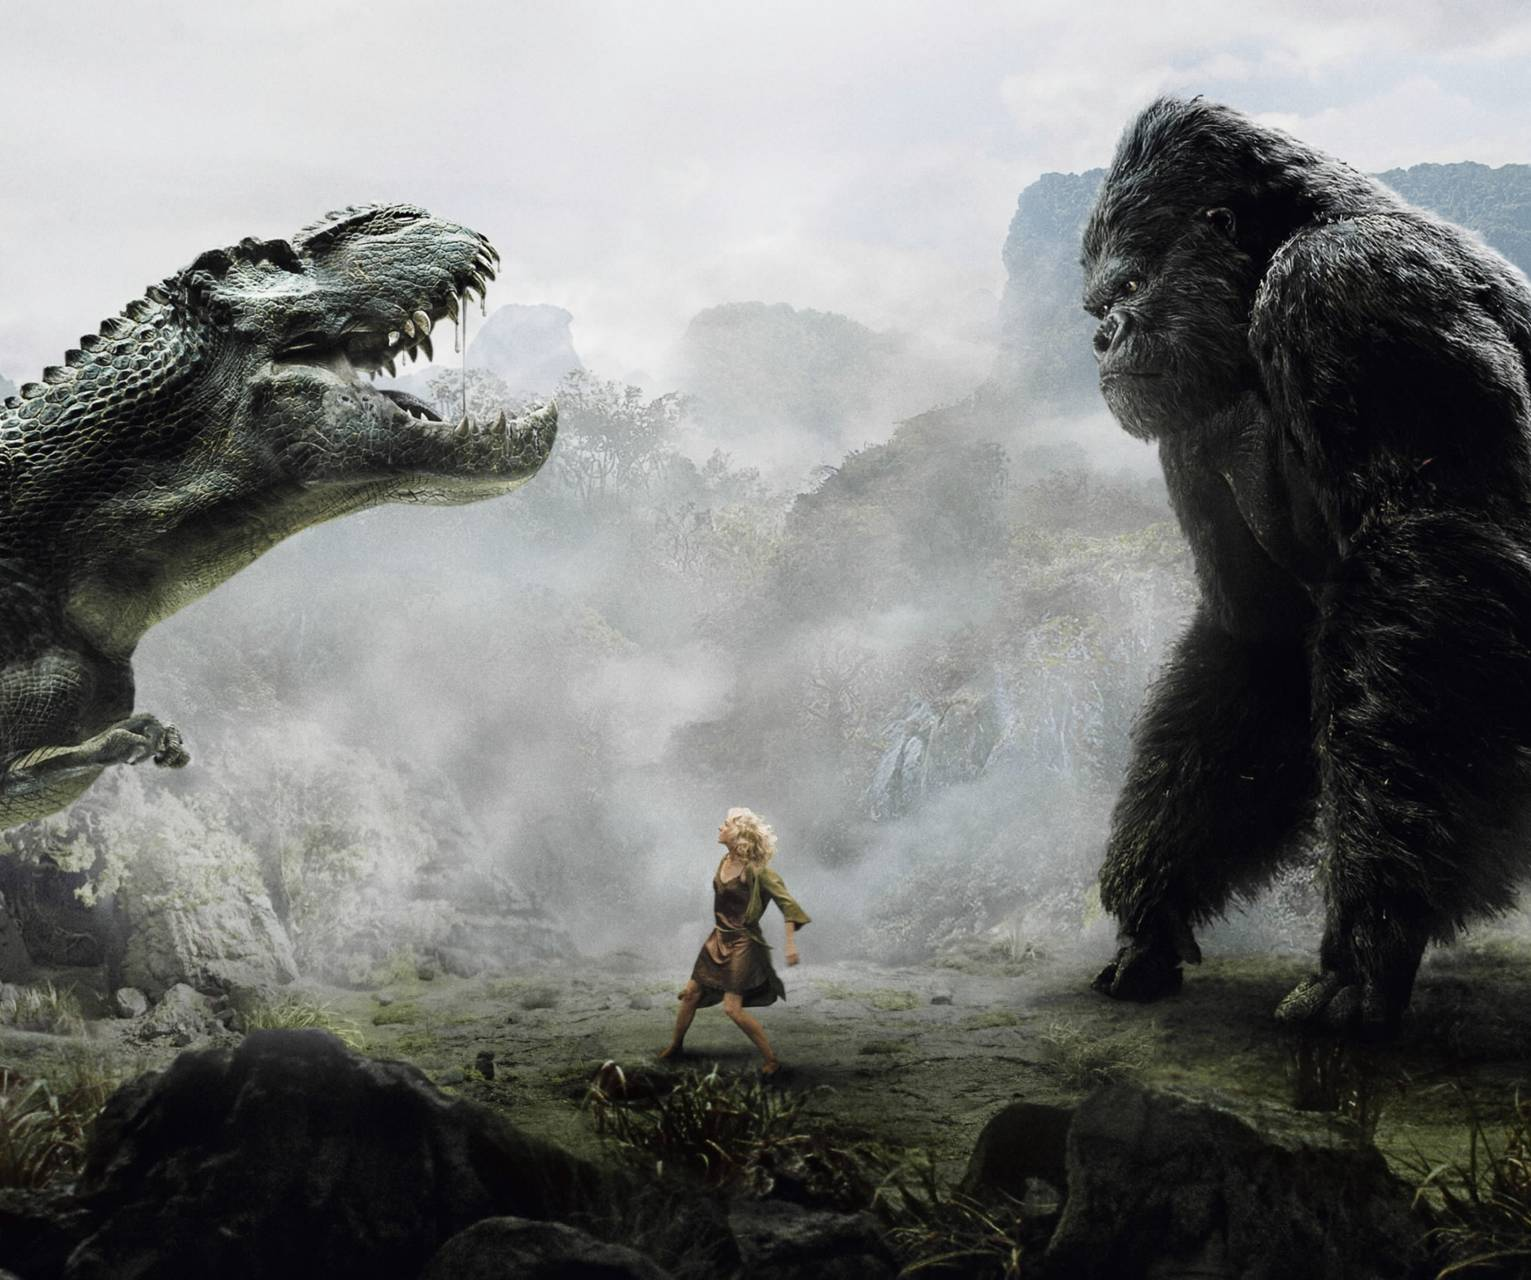 T-rex Vs King Kong